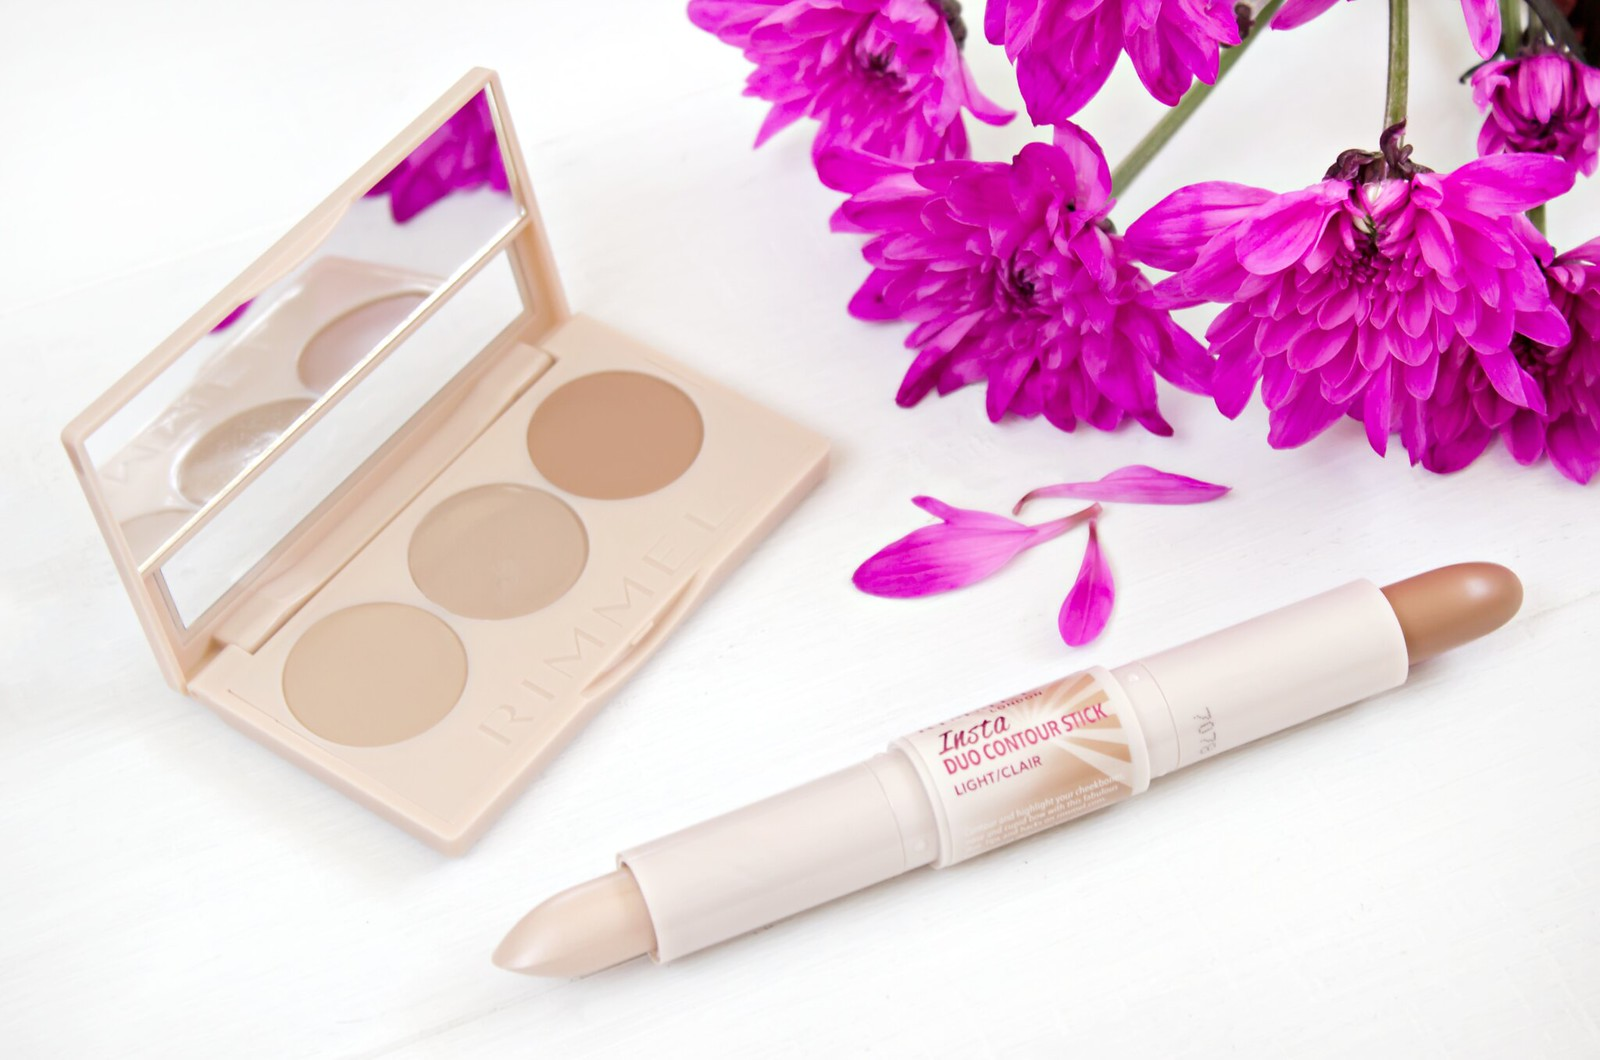 Insta Conceal and Contour Palette Light